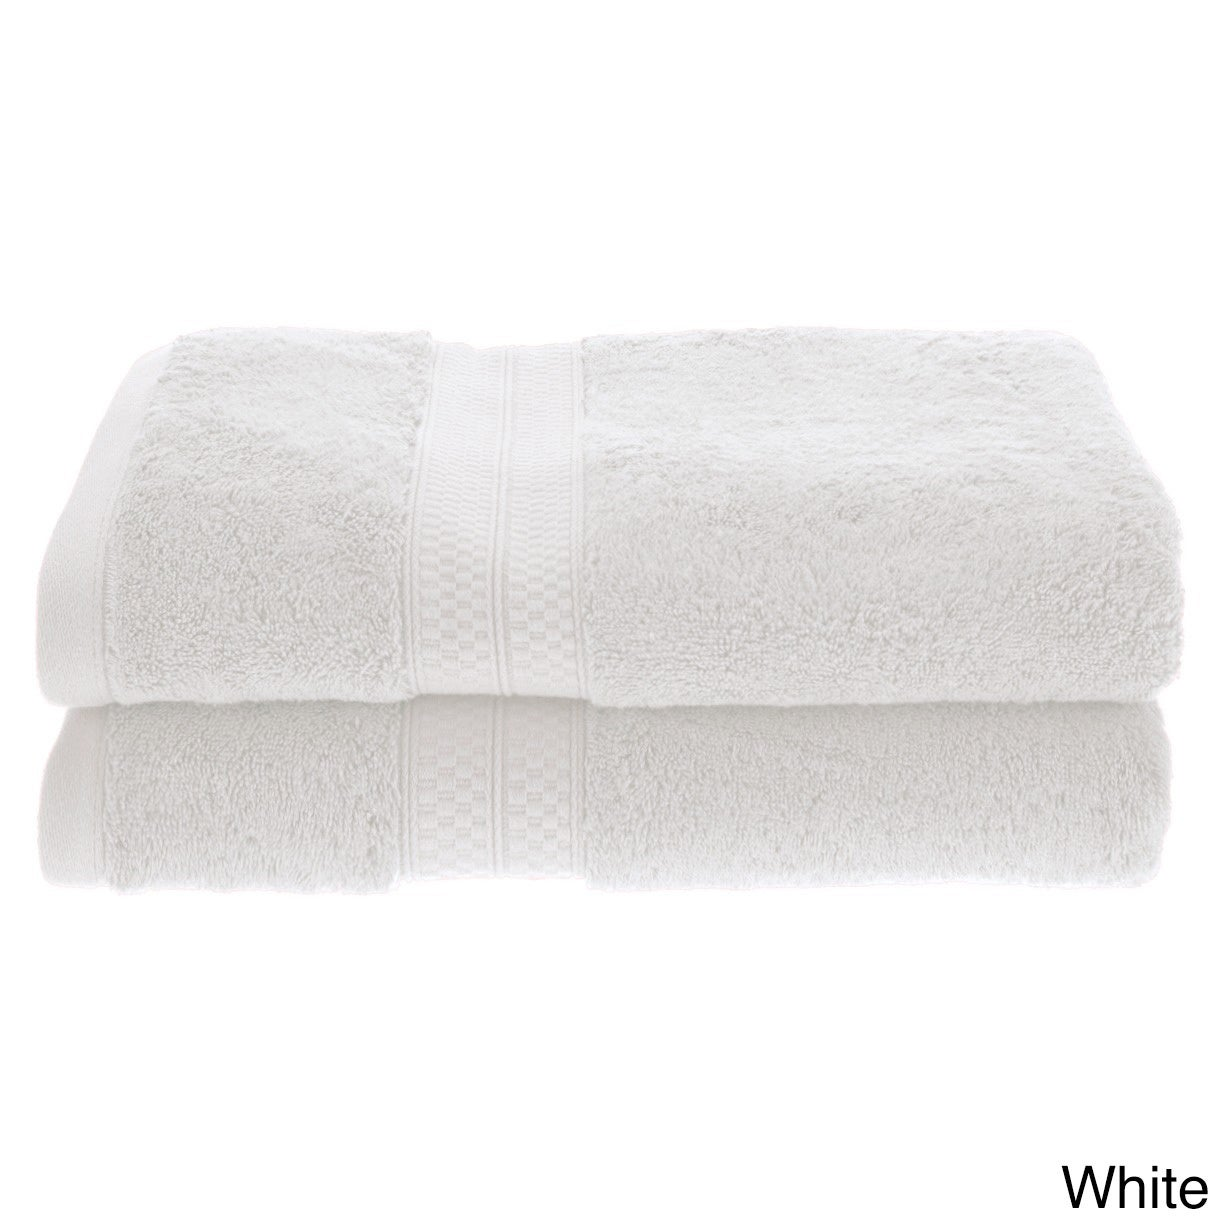 fbac3d1e597c Superior Soft Absorbent Rayon From Bamboo and Cotton Bath Towel (set ...